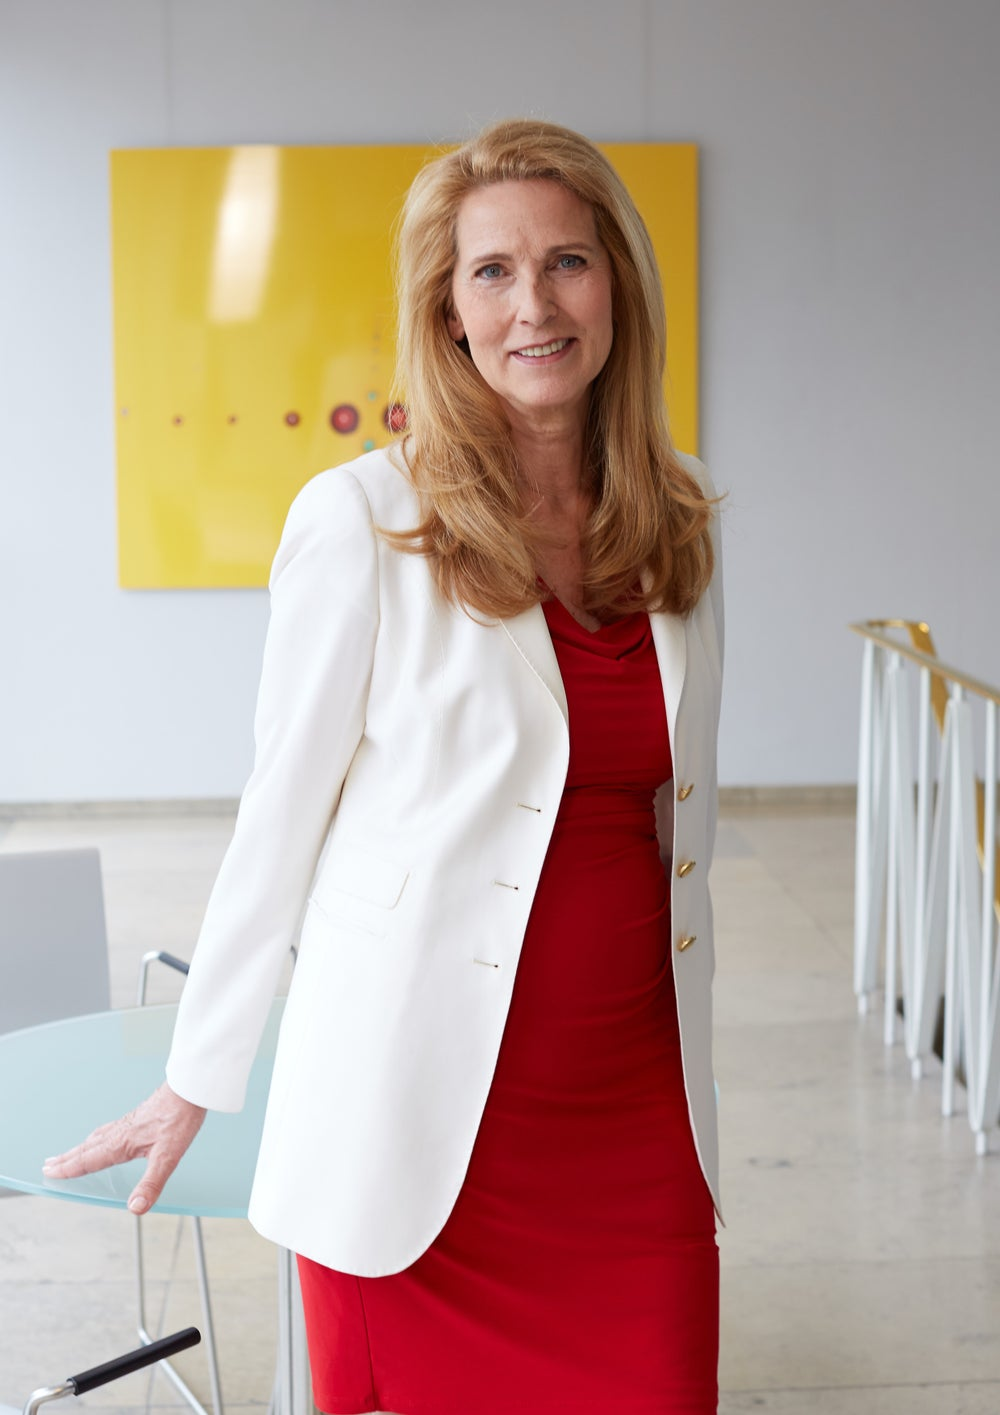 Dr. Elke Neujahr, Global CEO DKMS